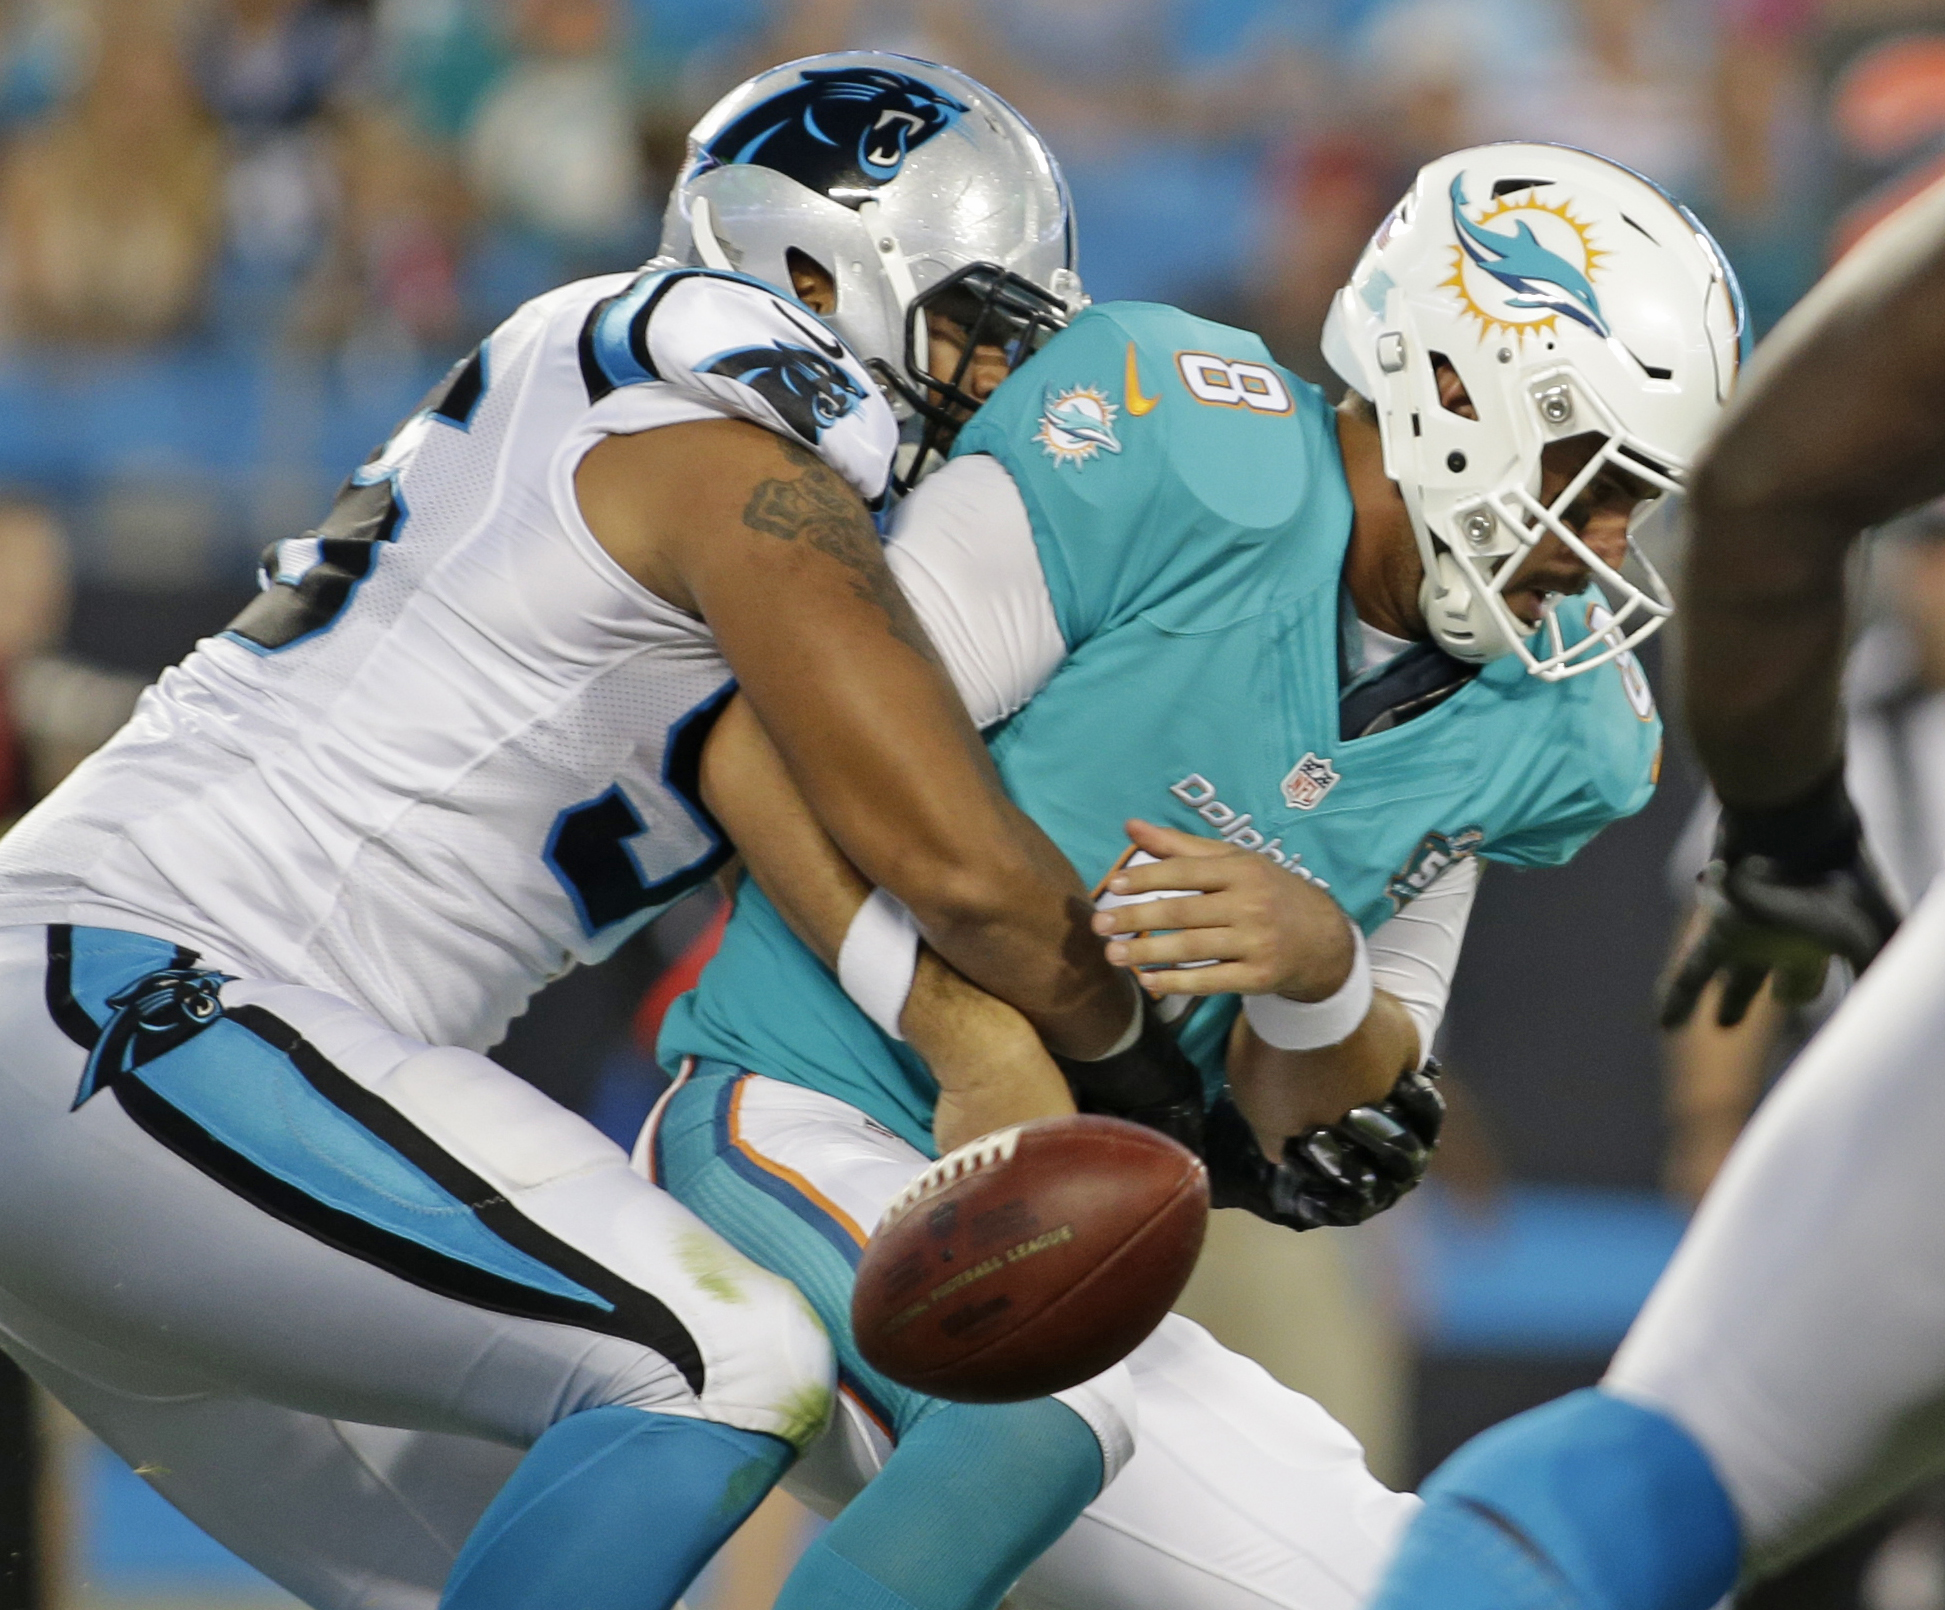 Miami Dolphins' Matt Moore (8) fumbles the ball after being hit by Carolina Panthers' Wes Horton (96) during the first half of an NFL preseason football game in Charlotte, N.C., Saturday, Aug. 22, 2015. The Dolphins recovered the ball. (AP Photo/Bob Lever